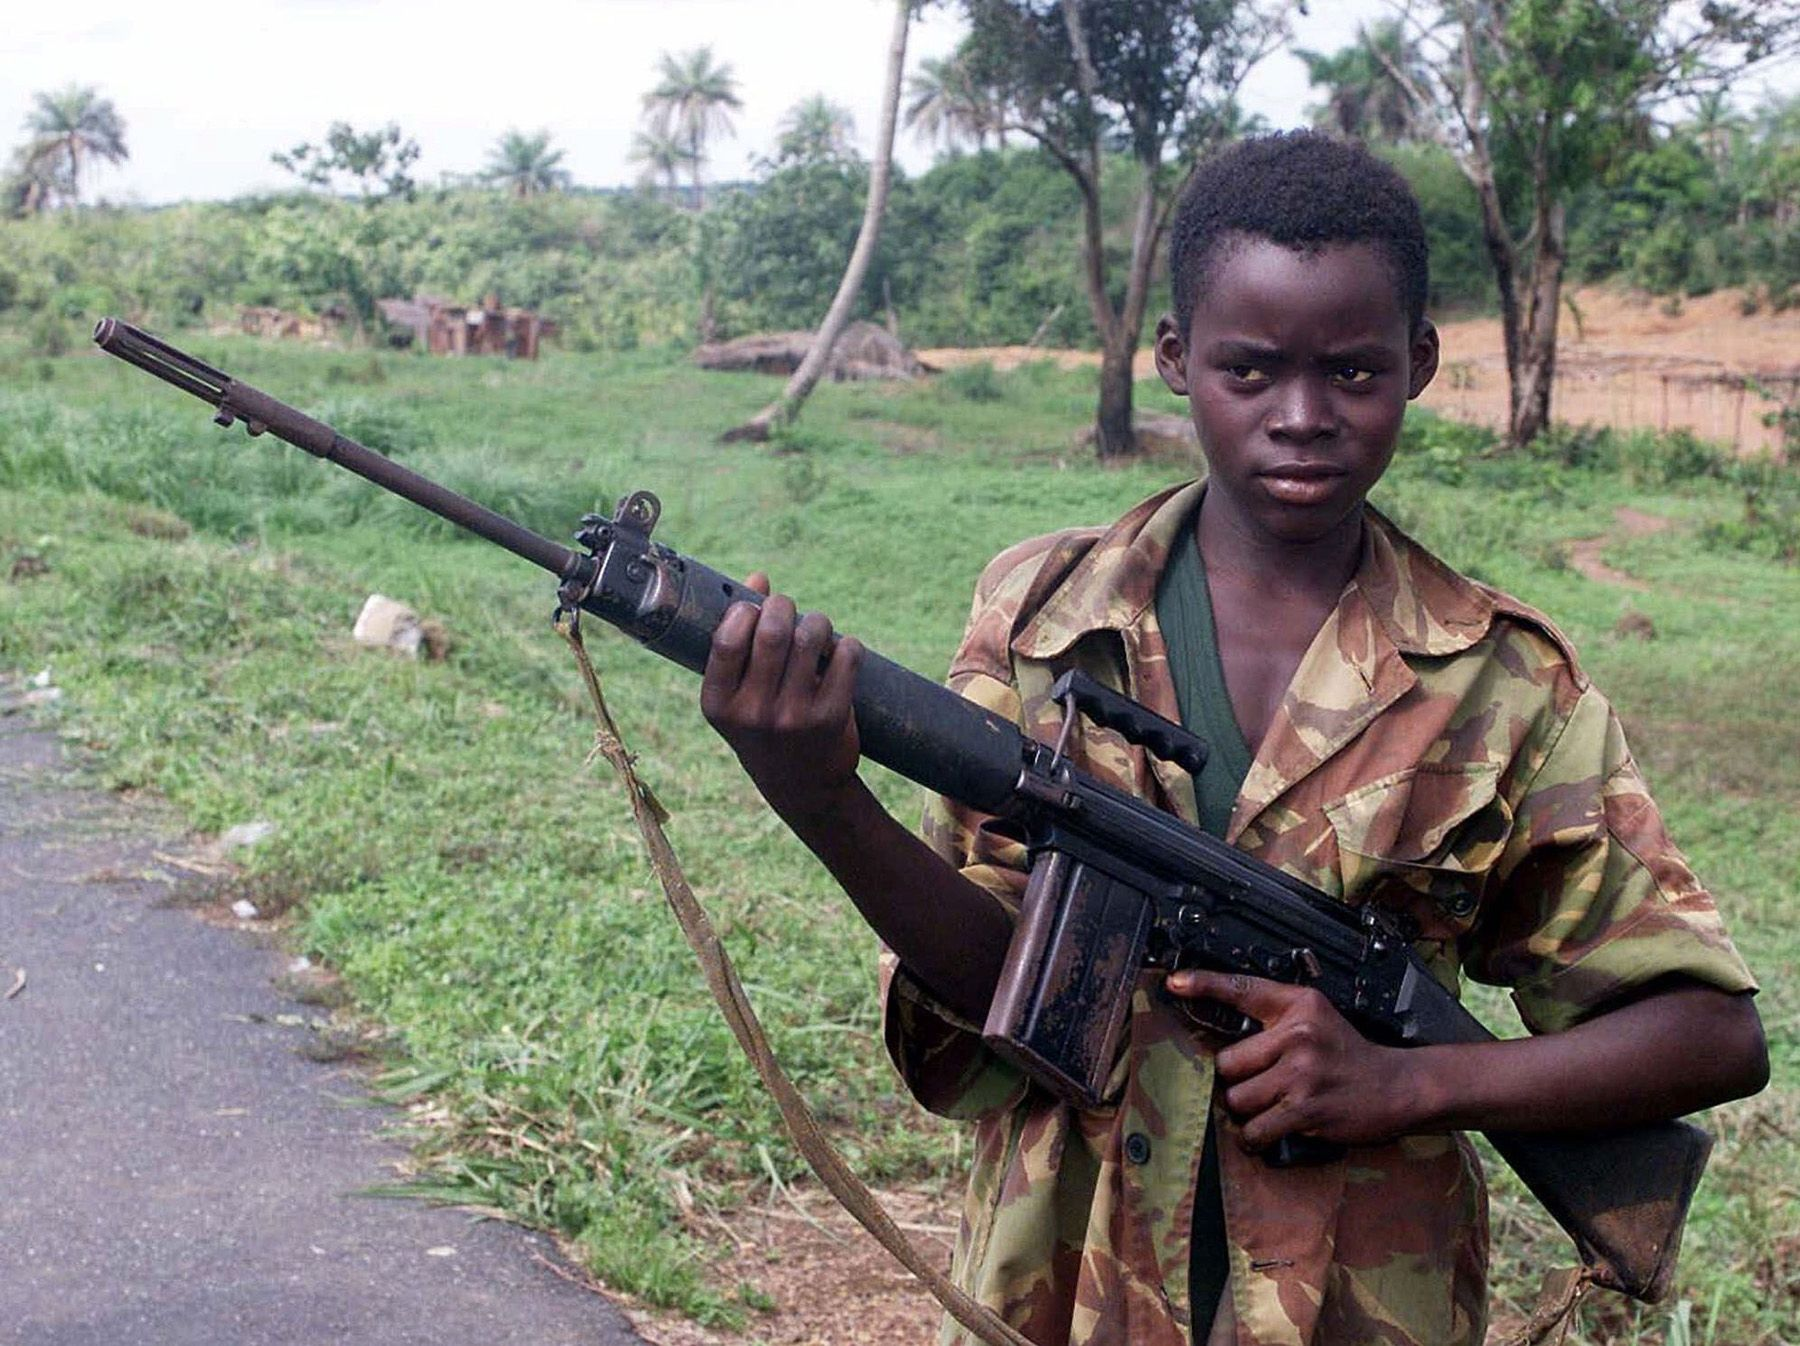 child soldiers in sierra leone essay Child soldiers in sierra leone the devastating eleven year civil war in sierra leone wreaked havoc across this west african country of approximately six million people from 1991 to 2002 throughout the conflict, horrific brutality and unconscionable crimes were committed by forces on all sides of the war.